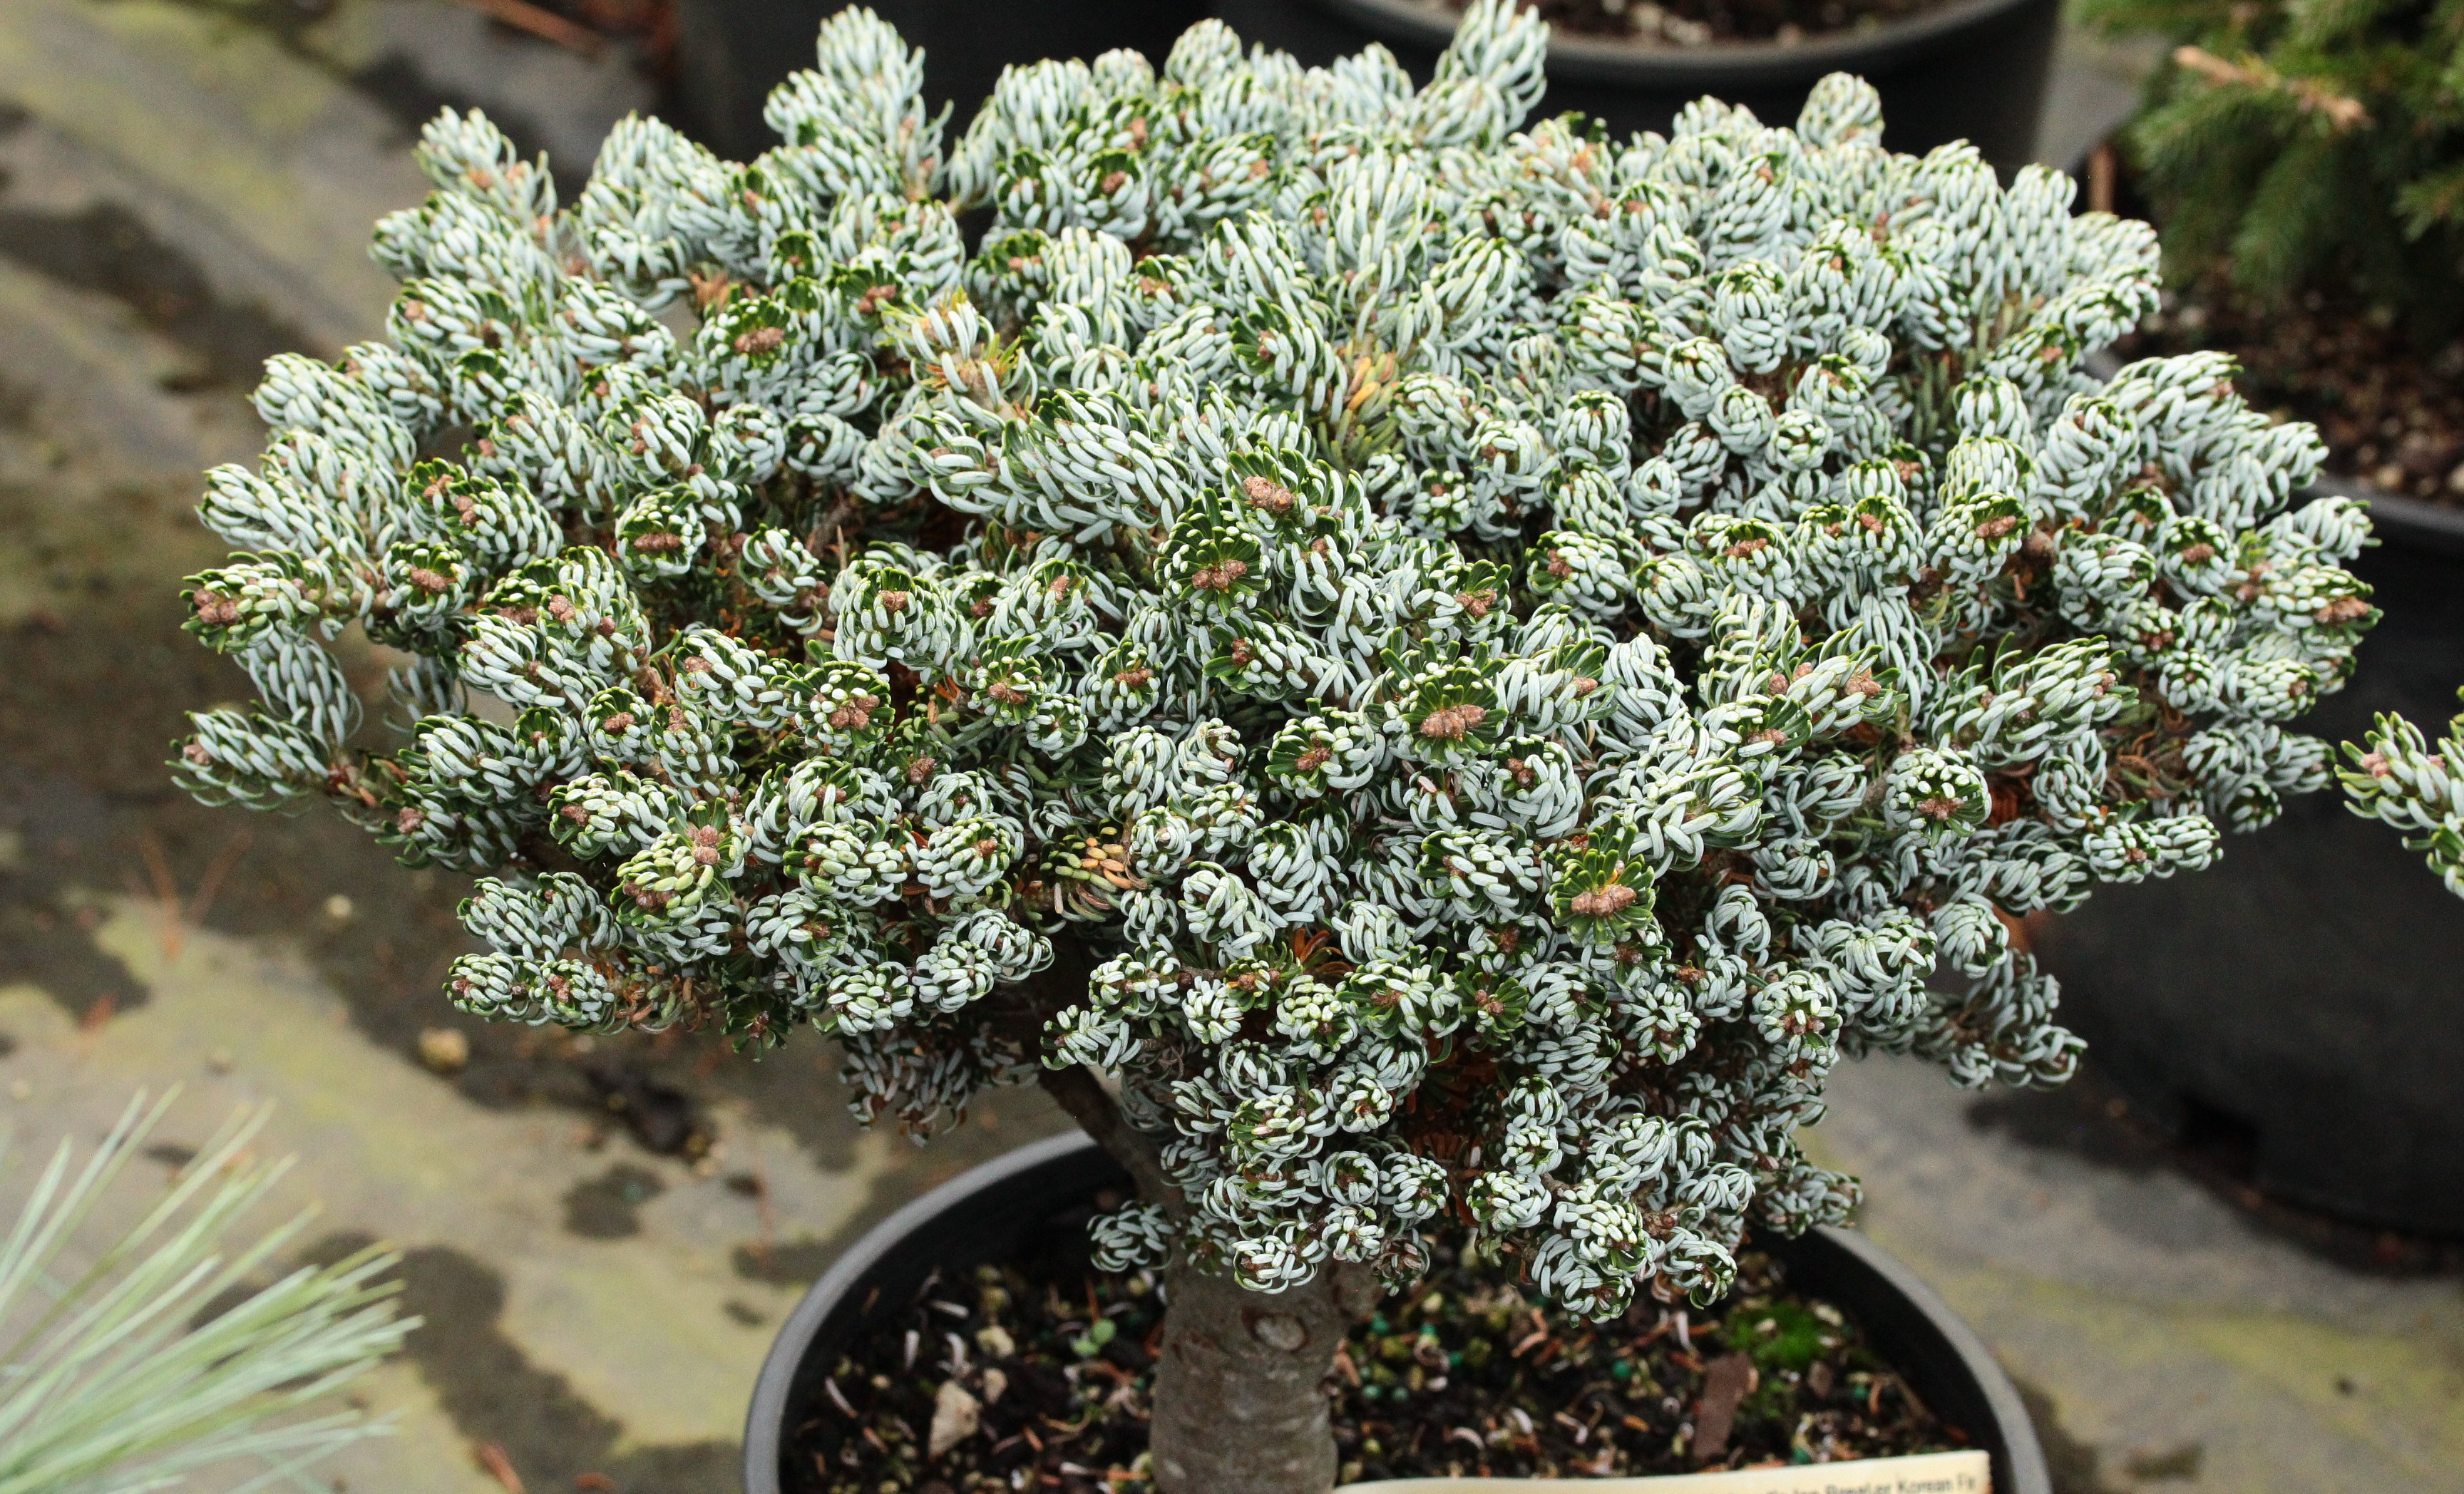 Abies koreana 'Kohout's Ice Breaker' Korean Fir